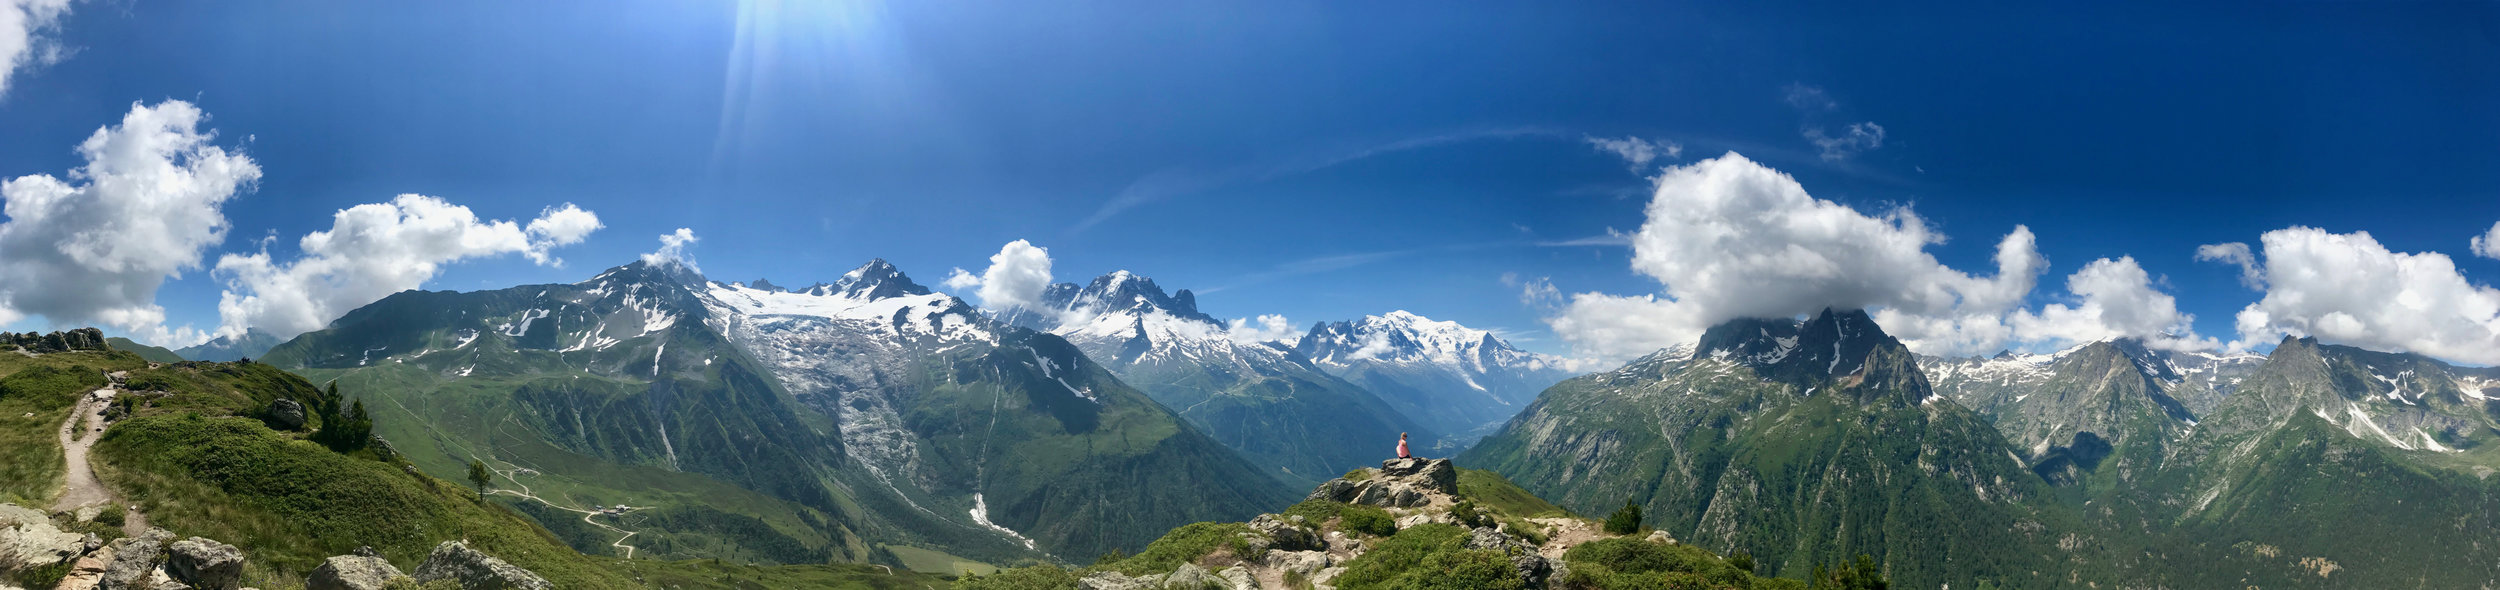 View from the Les Aiguillettes, looking out at the Mont Blanc massif. Mont Blanc is directly above Naomi (further away, hence it looks lower), and you can just about make out Chamonix in the valley to her right. Click on image for full-screen 4K quality